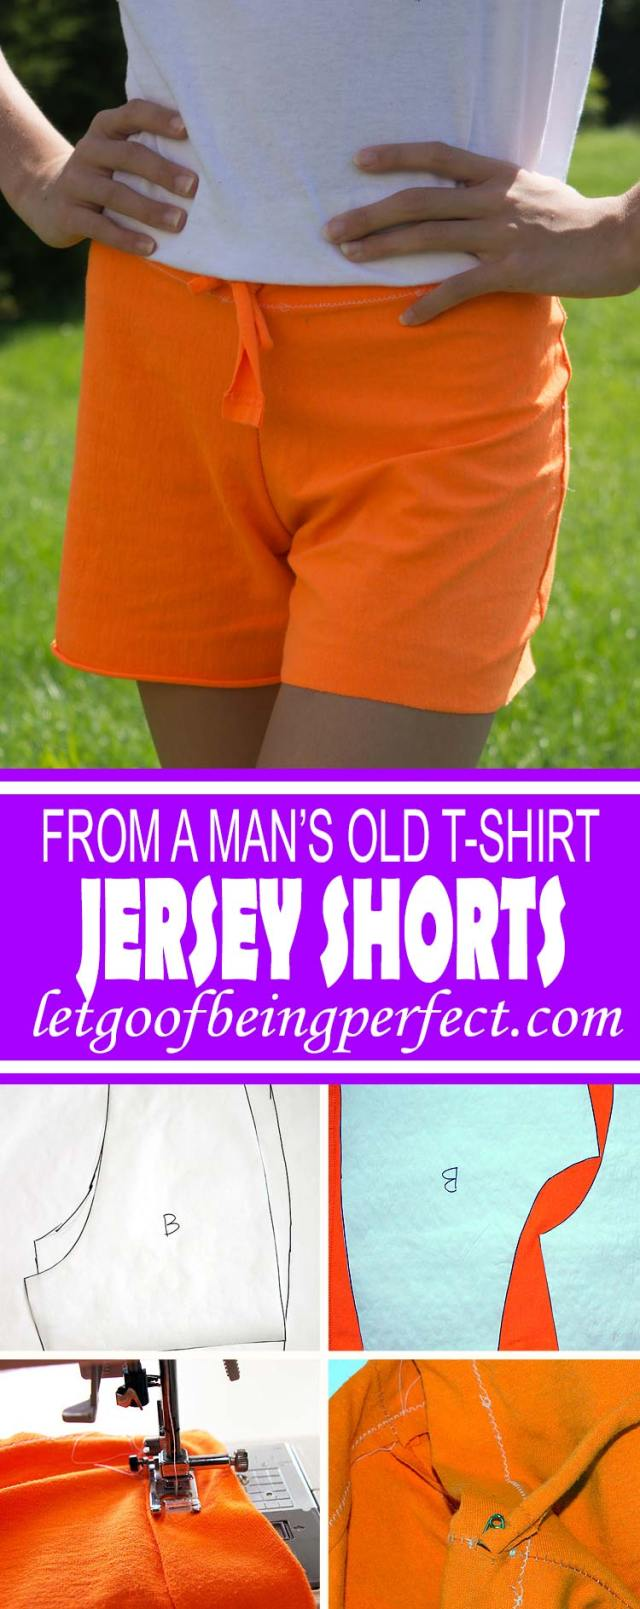 DIY Refashion Jersey Shorts from a Man's T-Shirt - Refashion / upcycle a man's #tshirt into a pair of workout or lounge shorts, with no pattern needed. Step-by-step DIY sewing tutorial for upcycling clothes into a a custom pair of shorts. Remake, redo, reuse, and recycle to help save money and save the planet. Explore the web site for more refashioning tutorials, dozens of cute refashionista and fashion ideas with good, clear photos and instructions. http://letgoofbeingperfect.com